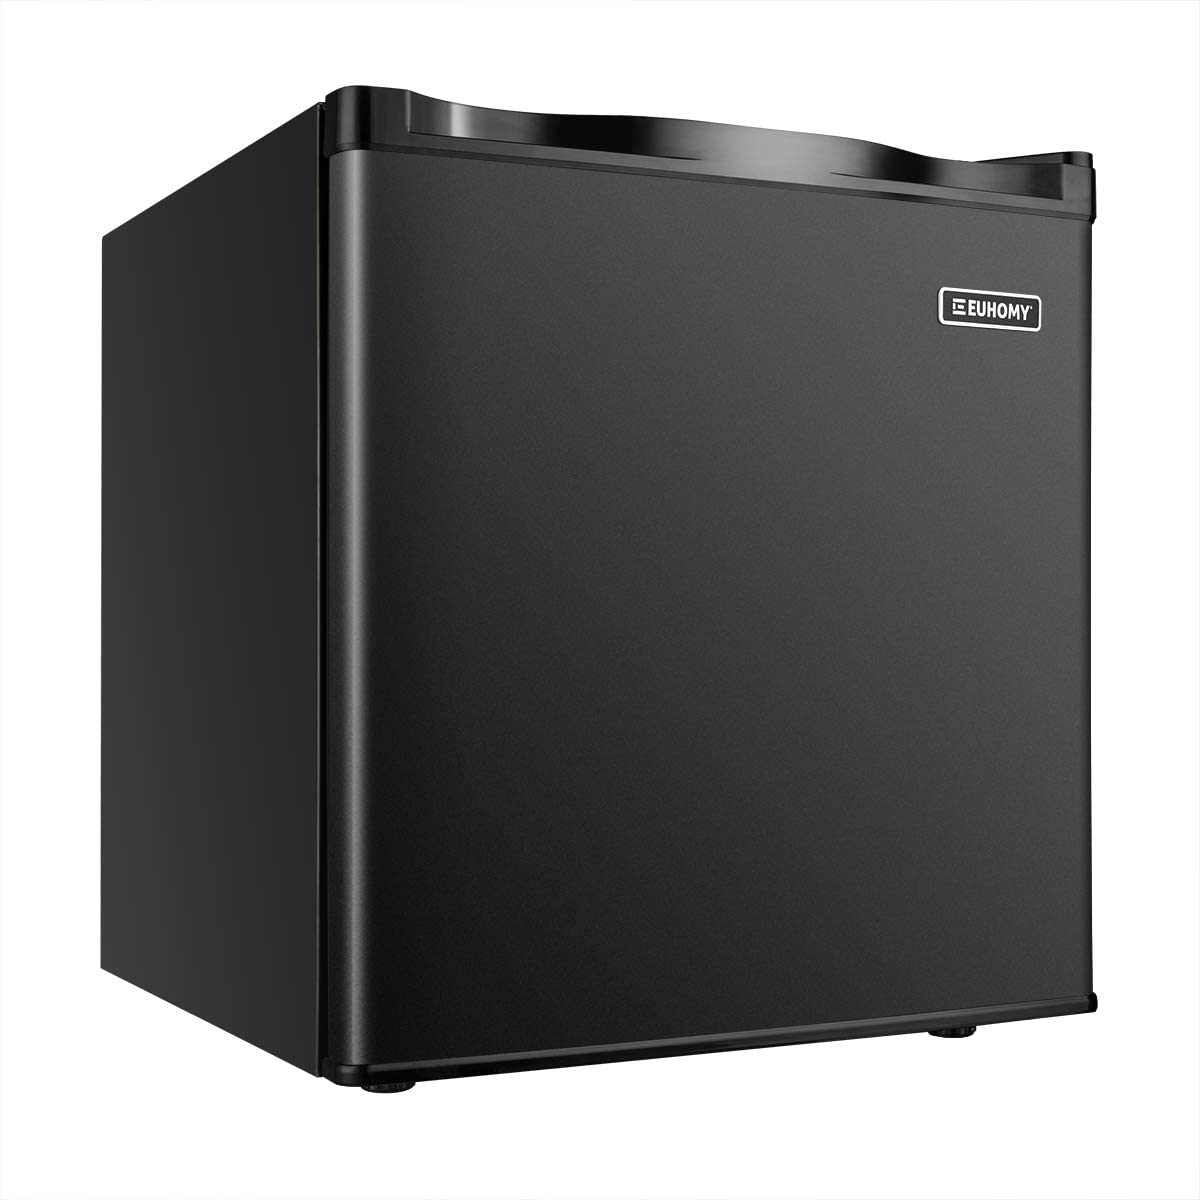 Euhomy Mini Freezer Countertop, Energy Star 1.1 Cubic Feet,Compact Single Door Upright Freezer with Reversible Adjustable Stainless Steel Door for Home/Dorms/Apartment/Office(Black)